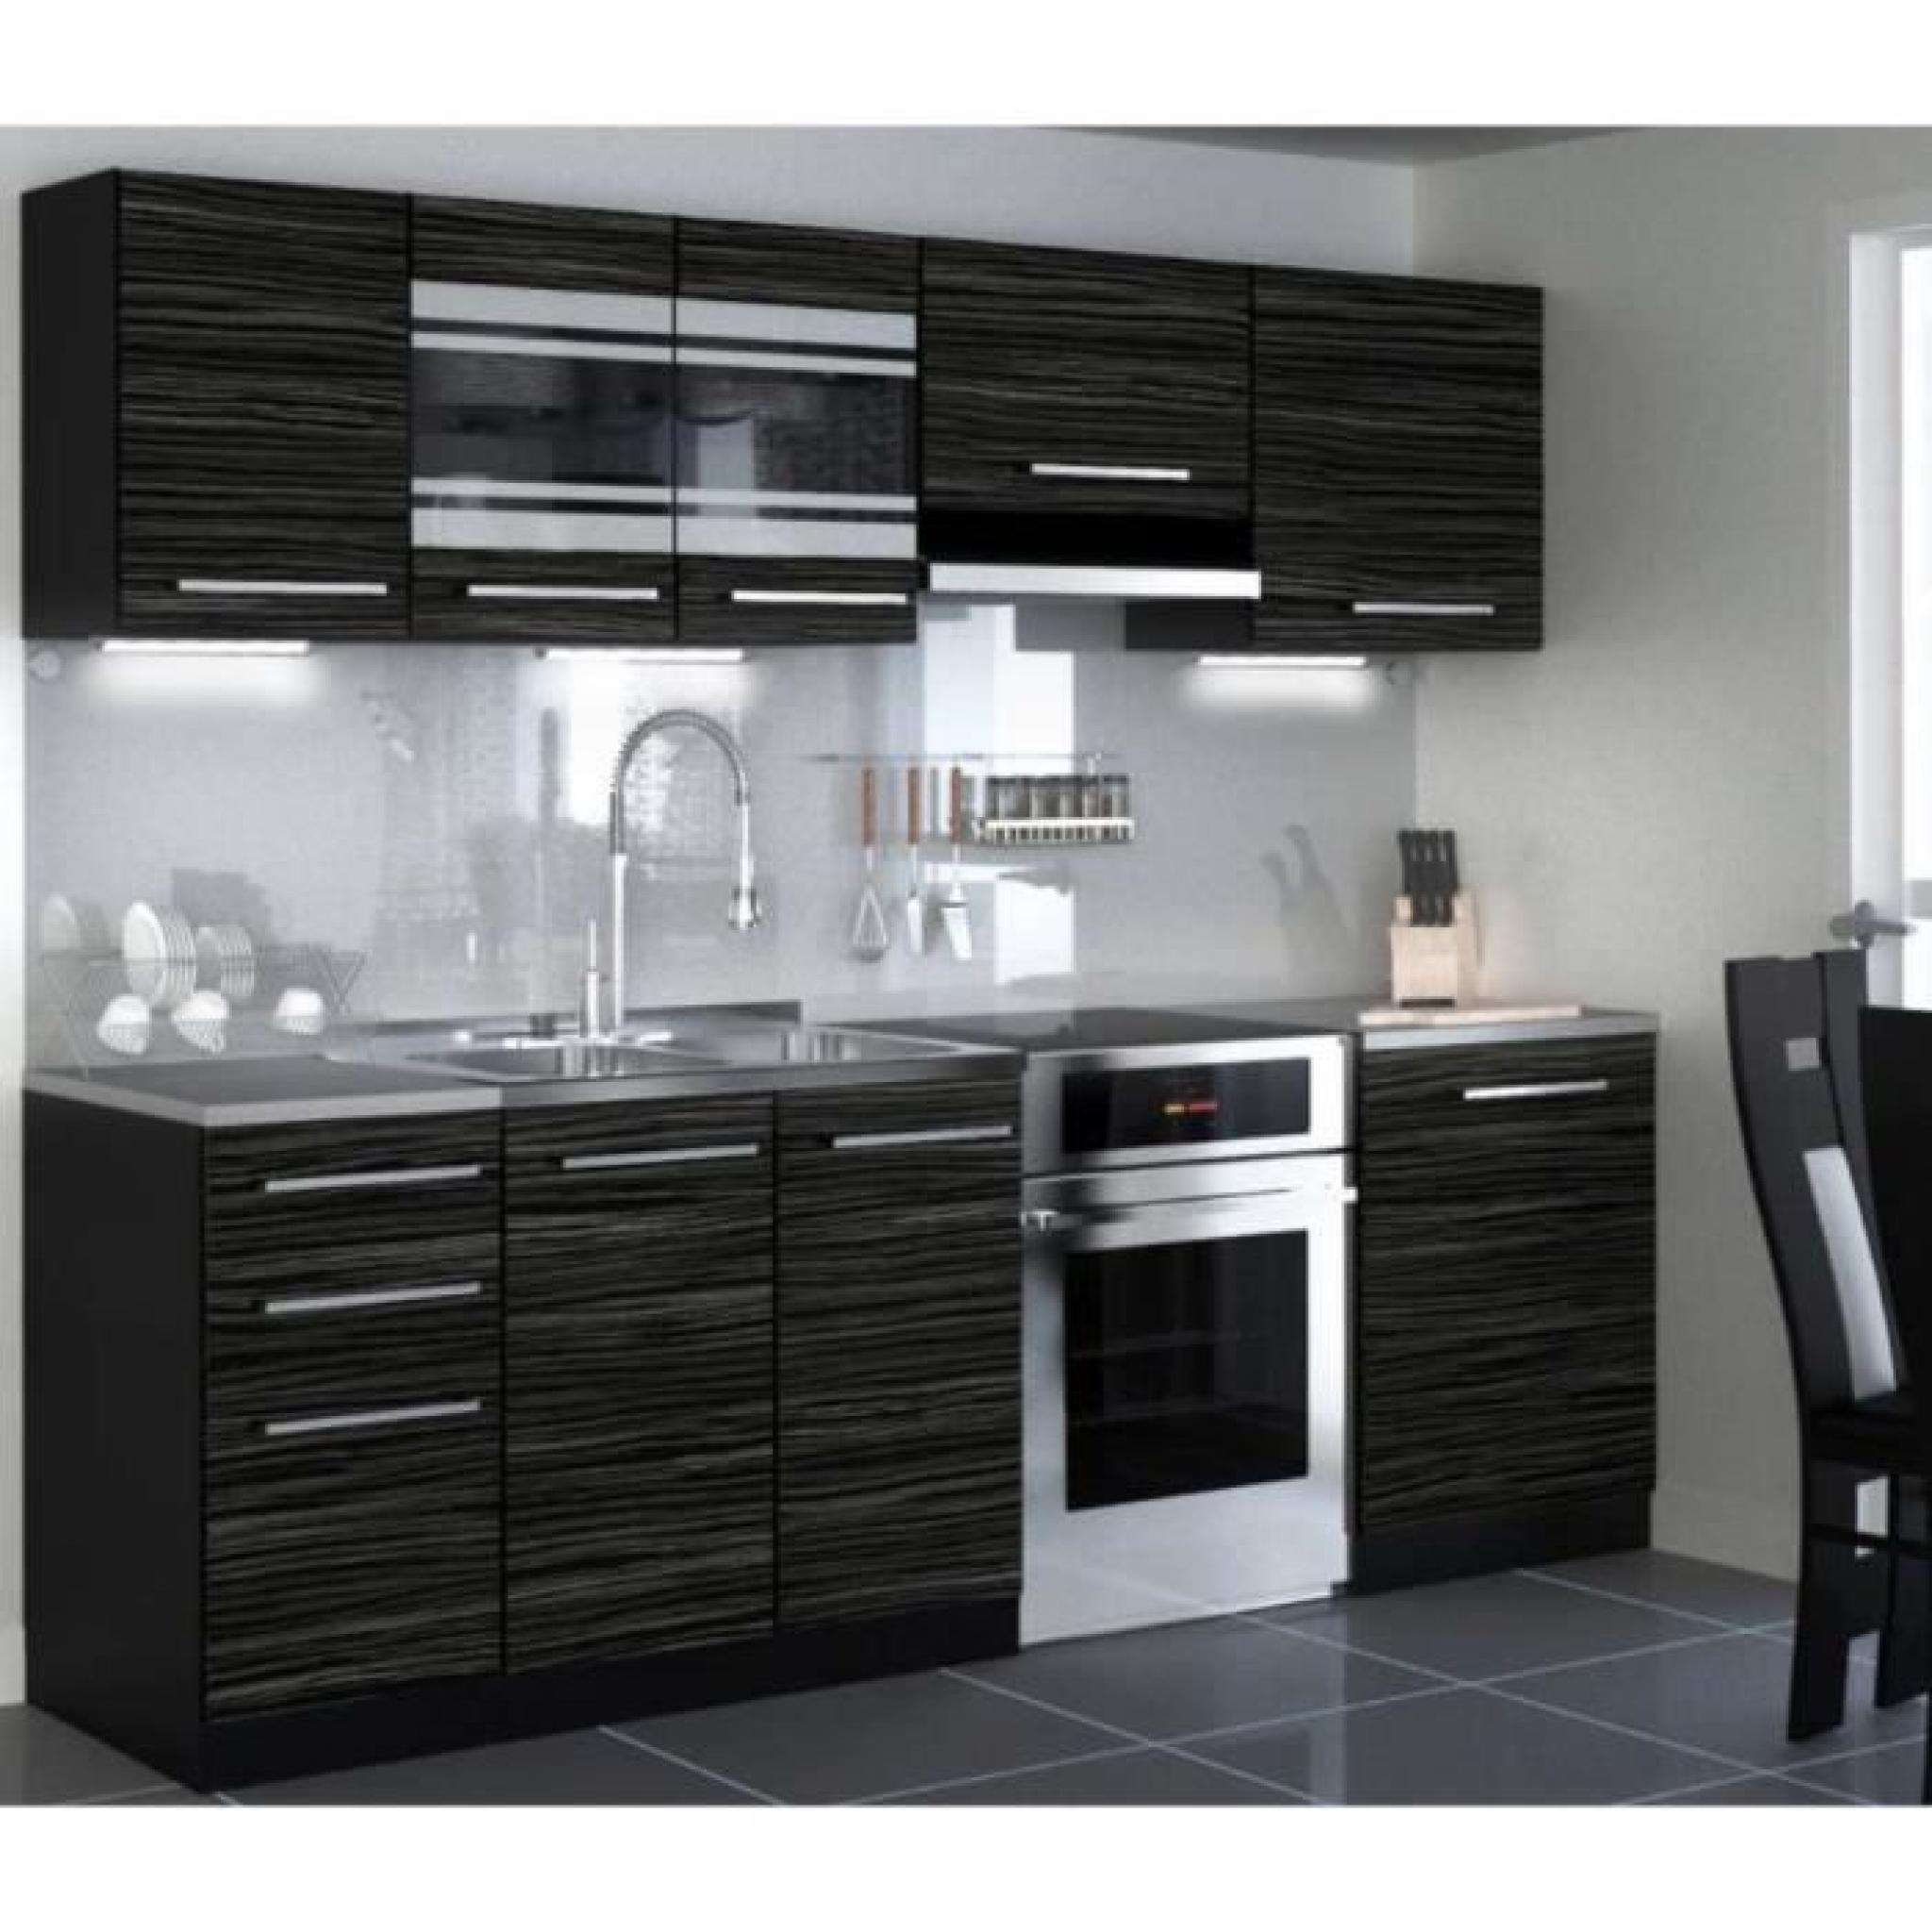 justhome torino led cuisine quip e compl te 240 cm mod le de poign e 1 achat vente cuisine. Black Bedroom Furniture Sets. Home Design Ideas